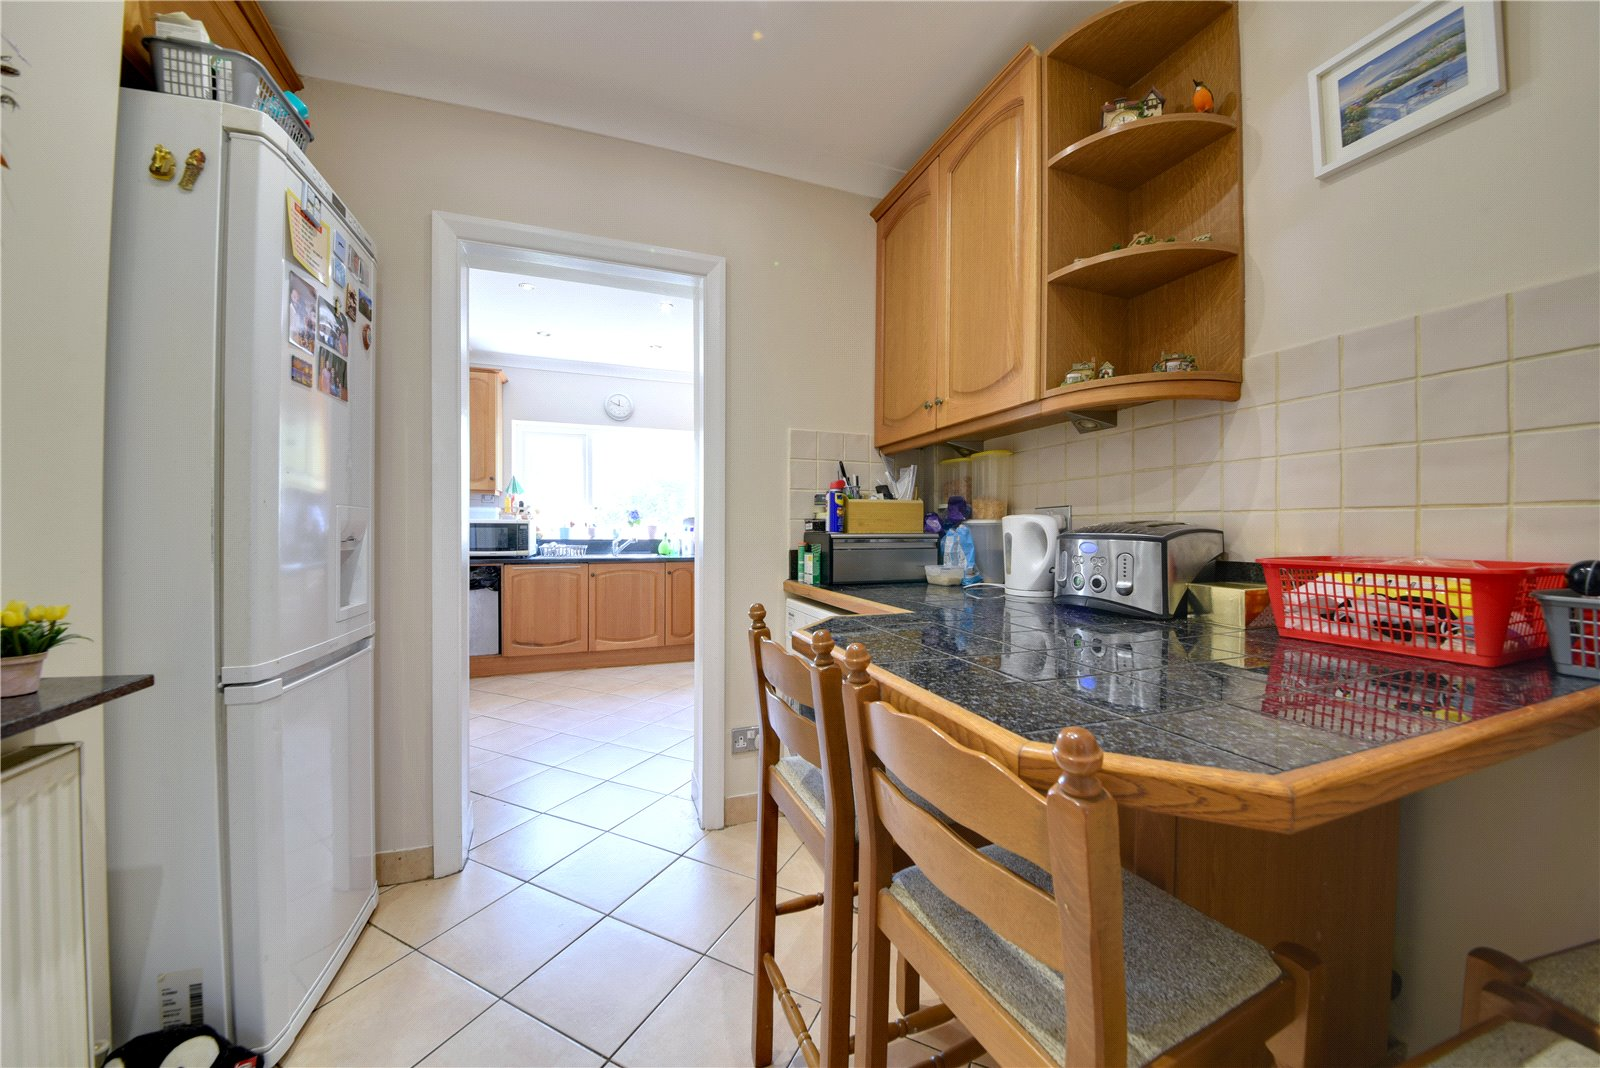 3 bed house for sale in Southgate, N14 4NY 10